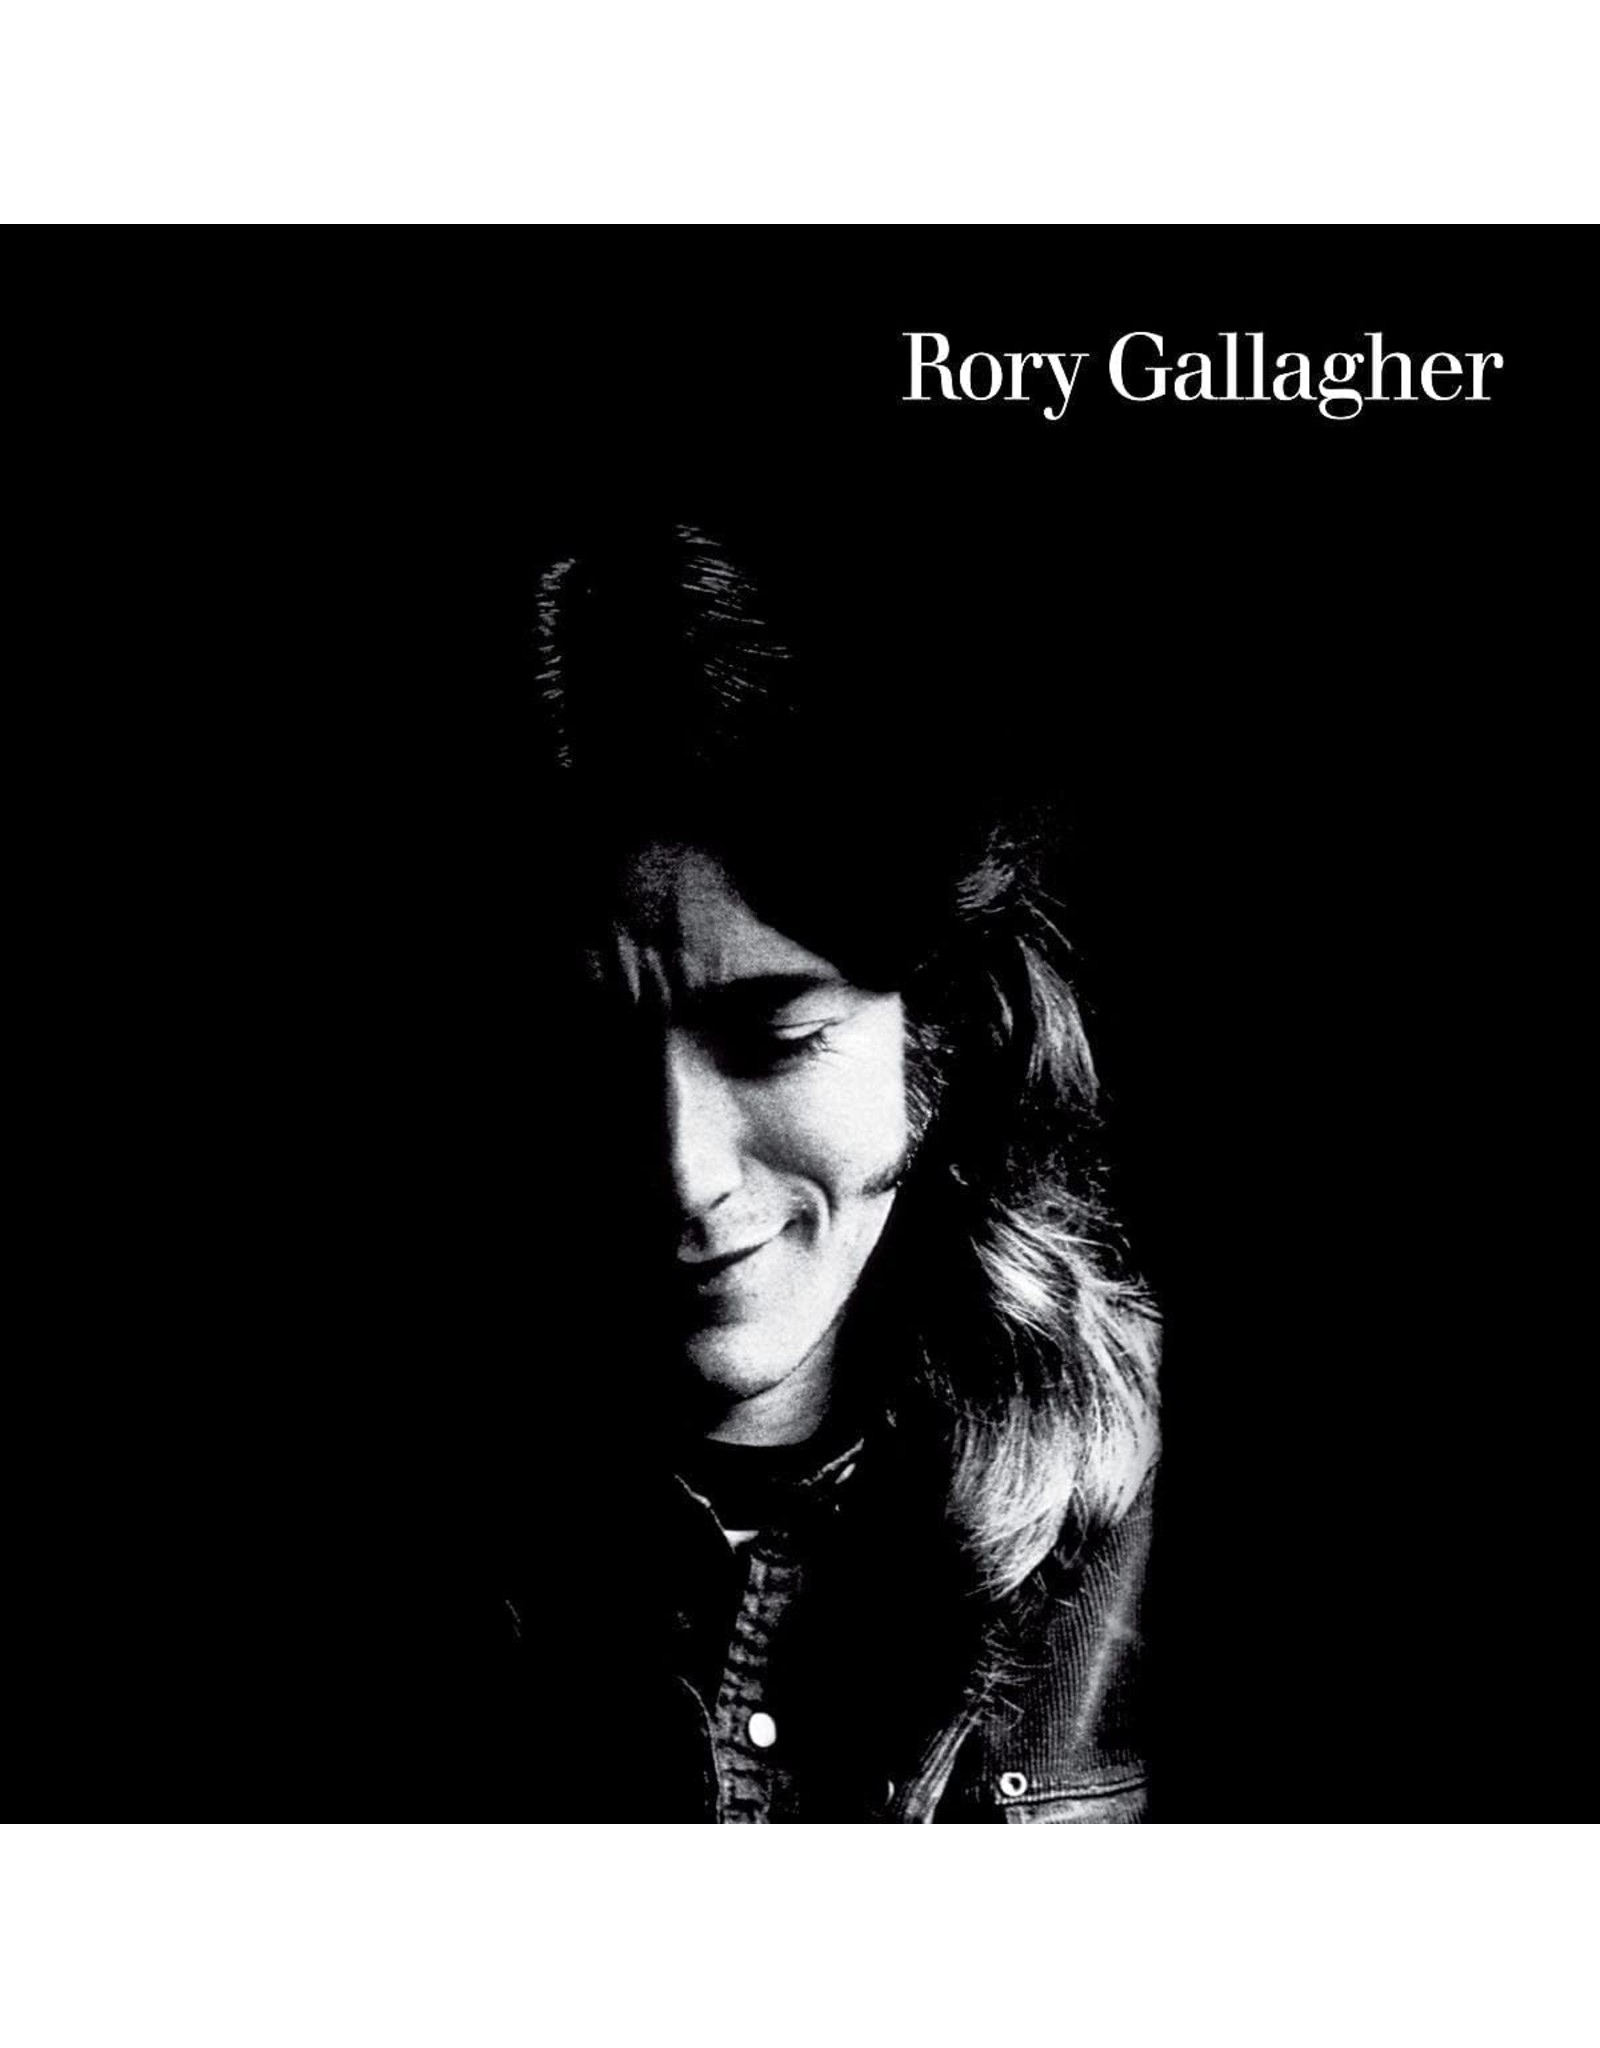 Gallagher, Rory - Rory Gallagher 3LP (50th Anniversary Edition)